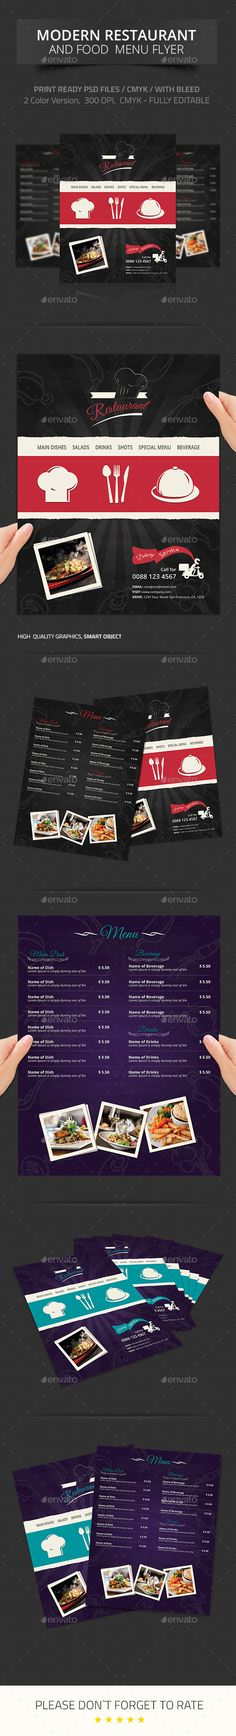 Christmas Burger Flyer Graphics, Edit text and Fonts - restaurant flyer